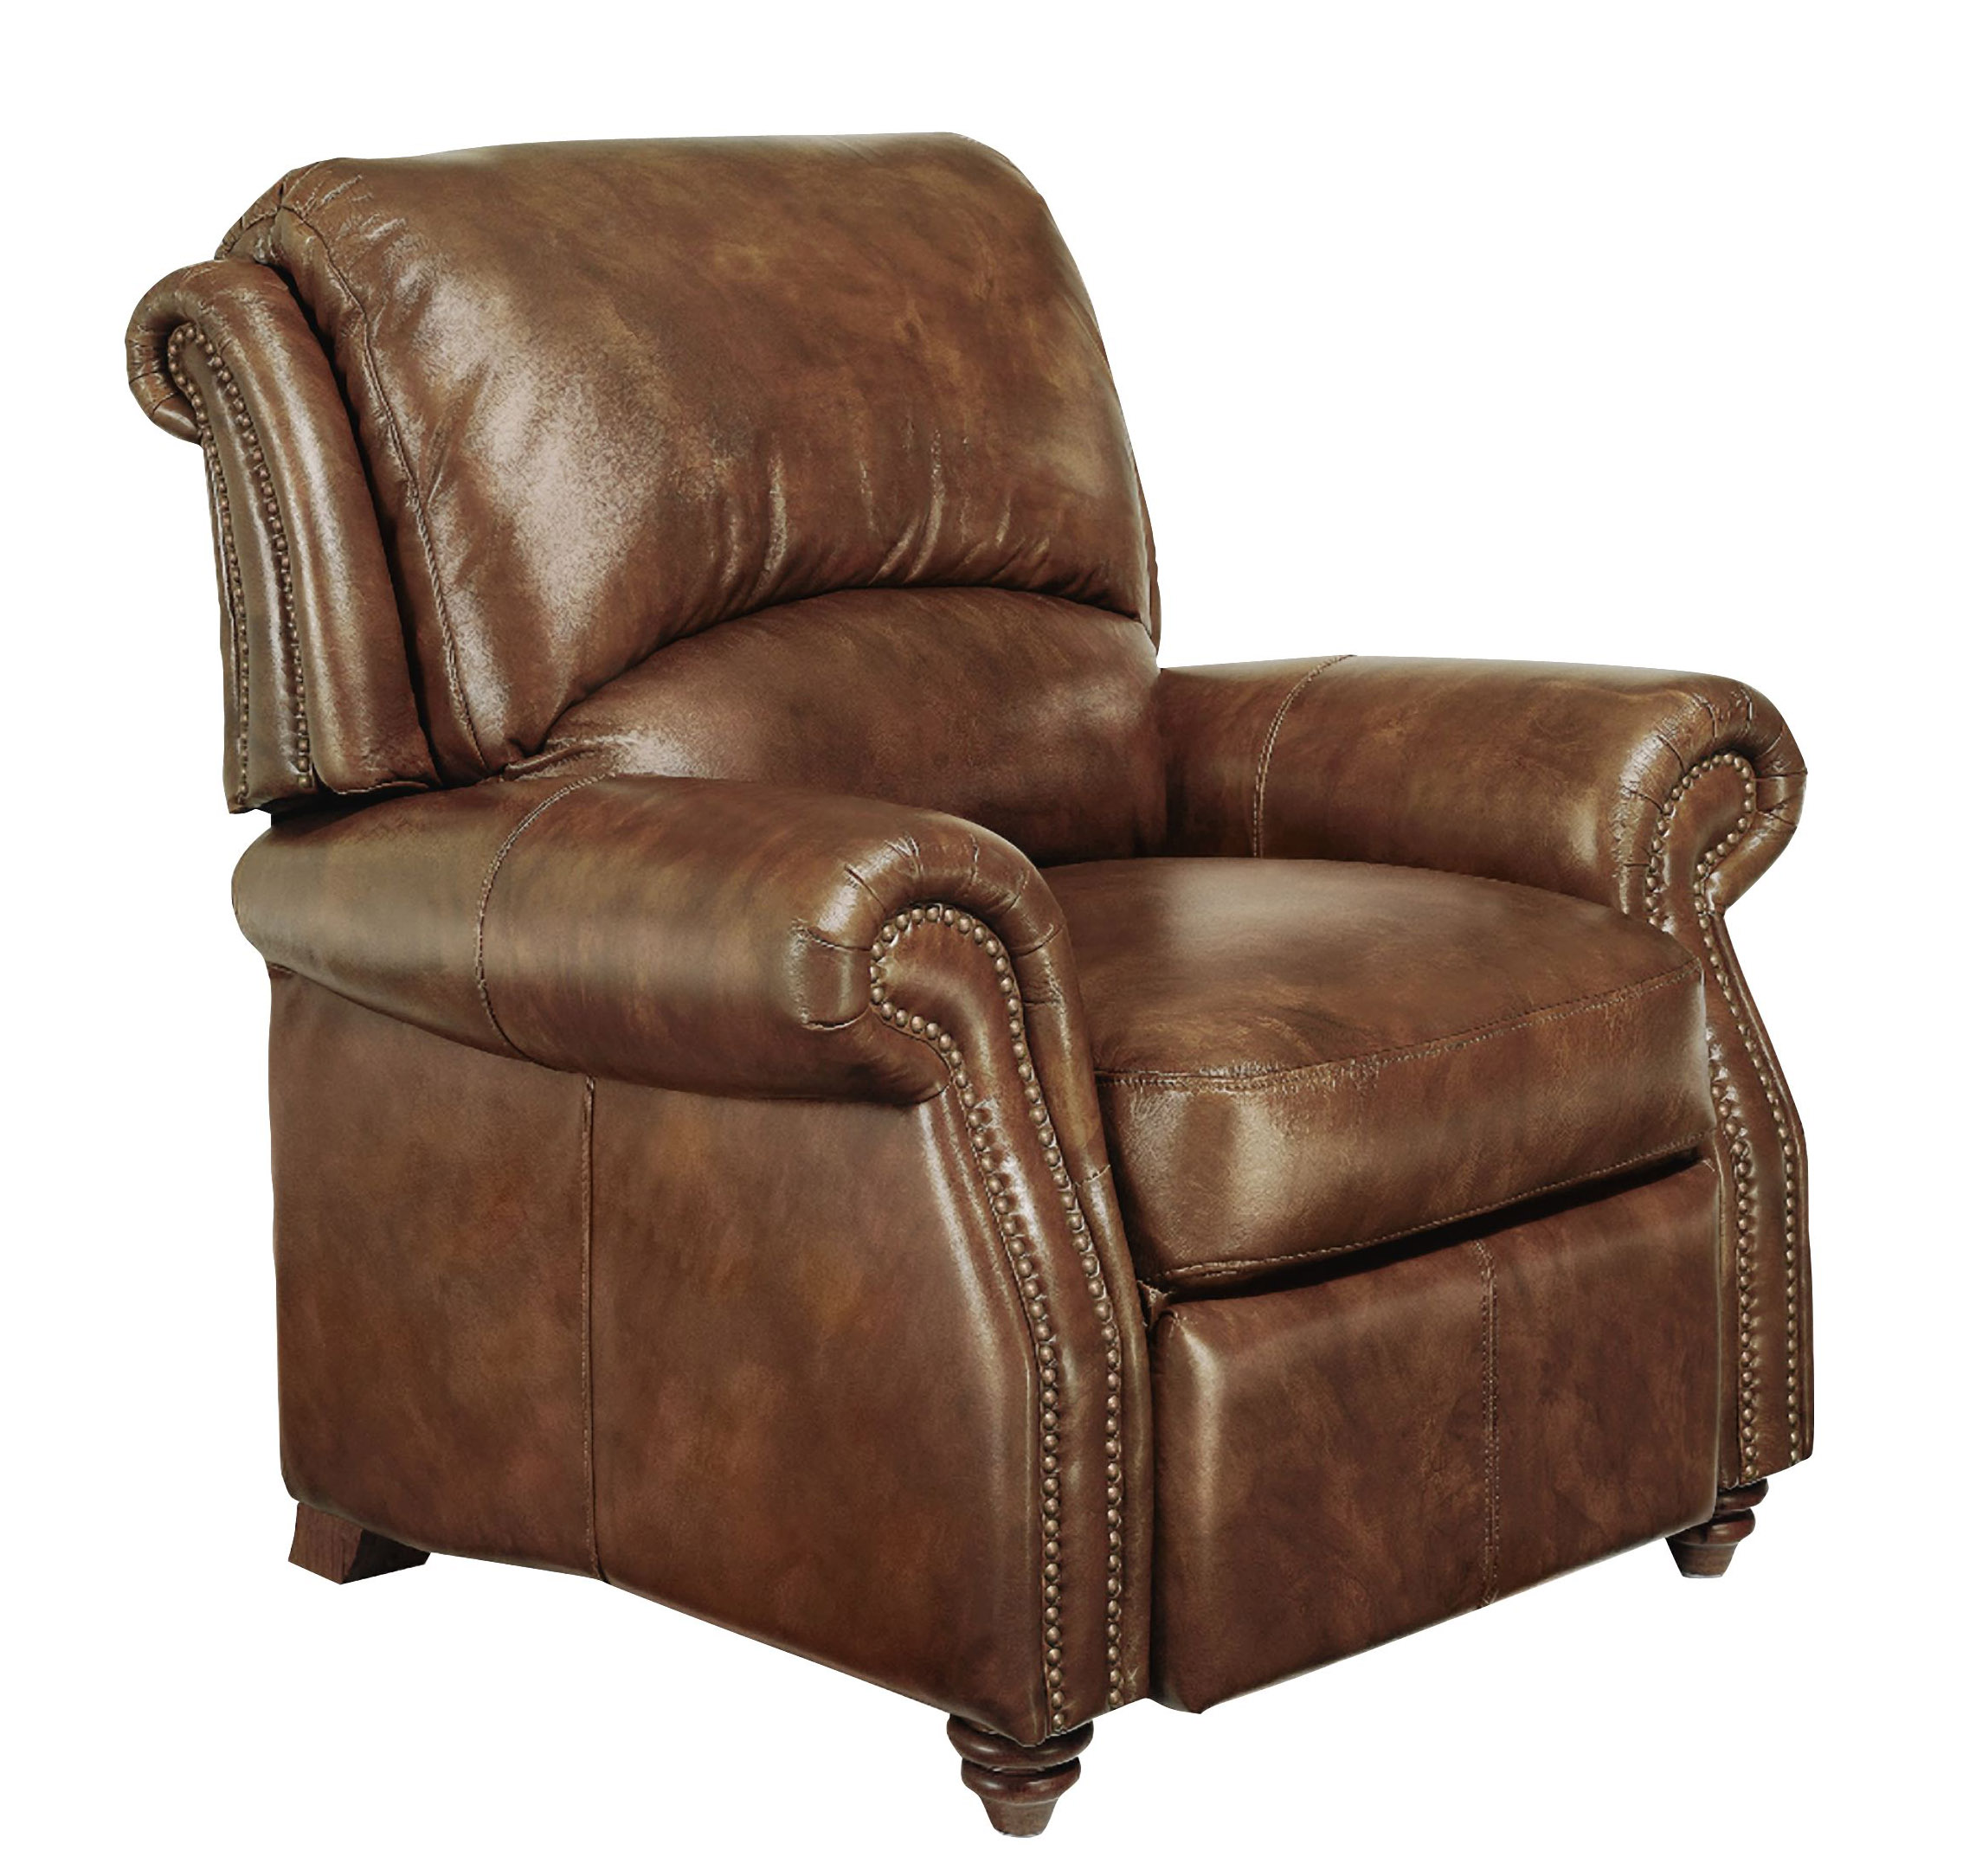 Leather Club Chair Traditional Genuine Top Grain Brown Leather Reclining Club